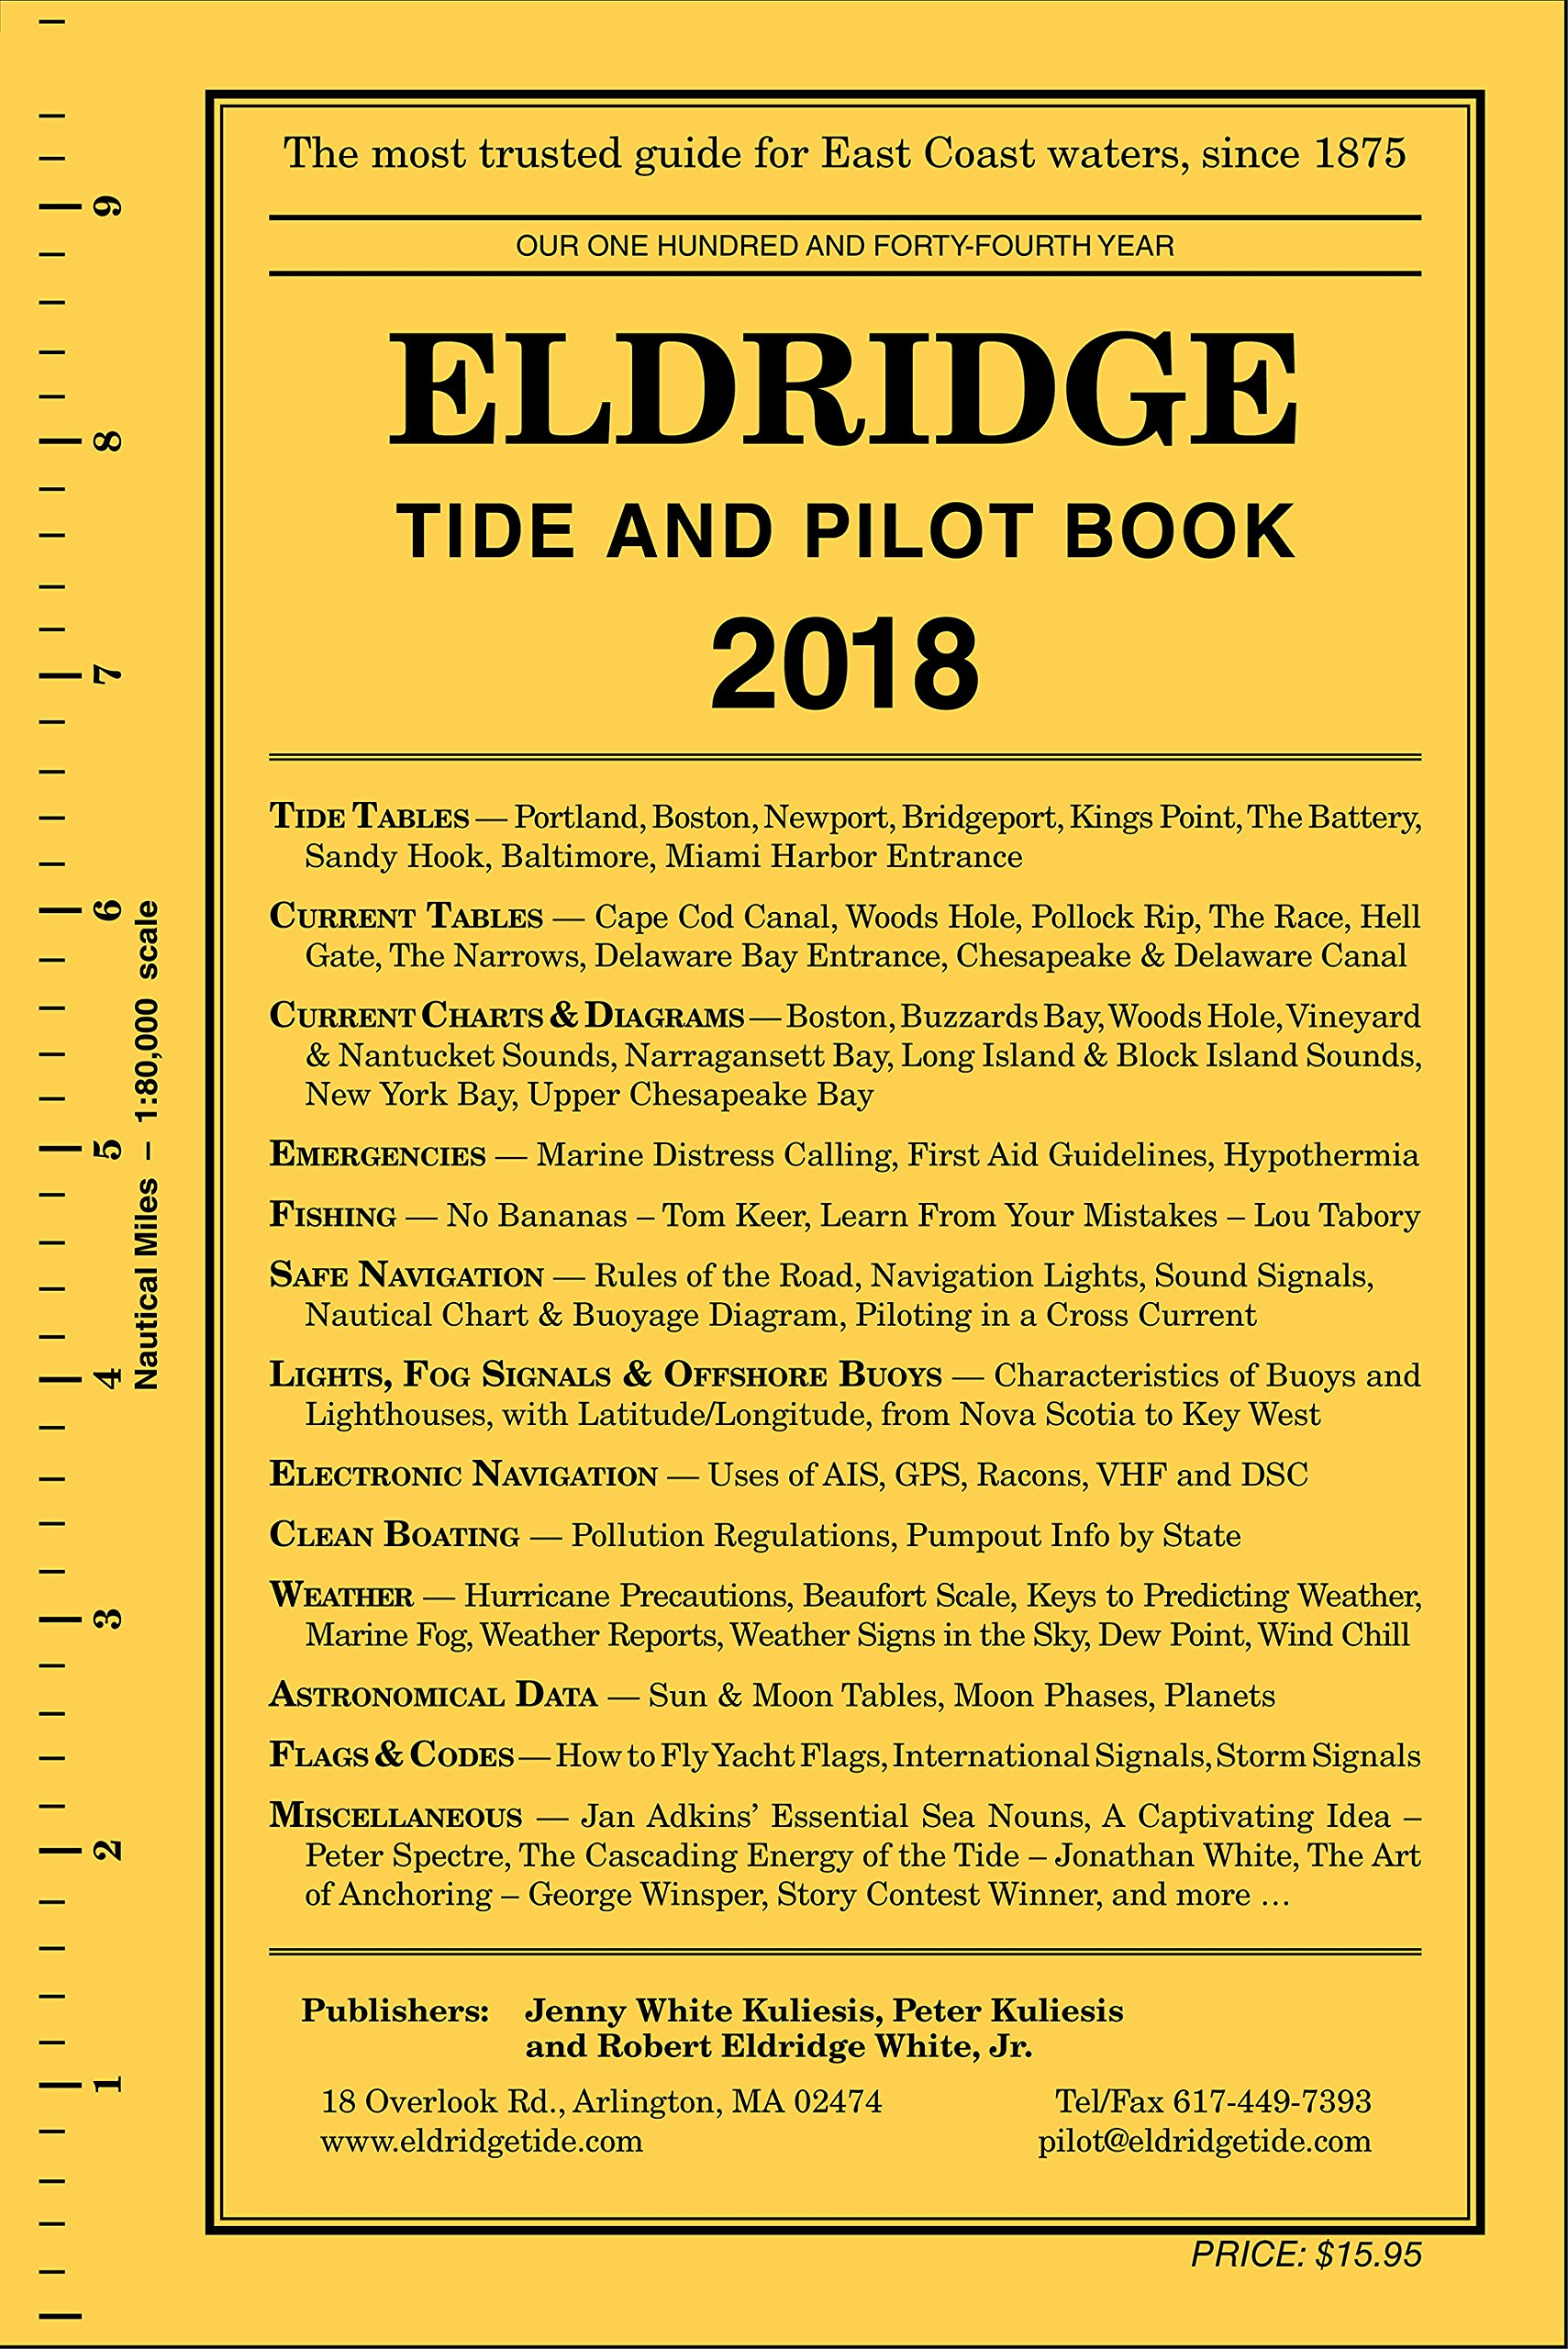 Eldridge tide and pilot book 2018 jenny white kuliesis peter eldridge tide and pilot book 2018 jenny white kuliesis peter kuliesis robert eldridge white jr 9781883465247 amazon books nvjuhfo Gallery